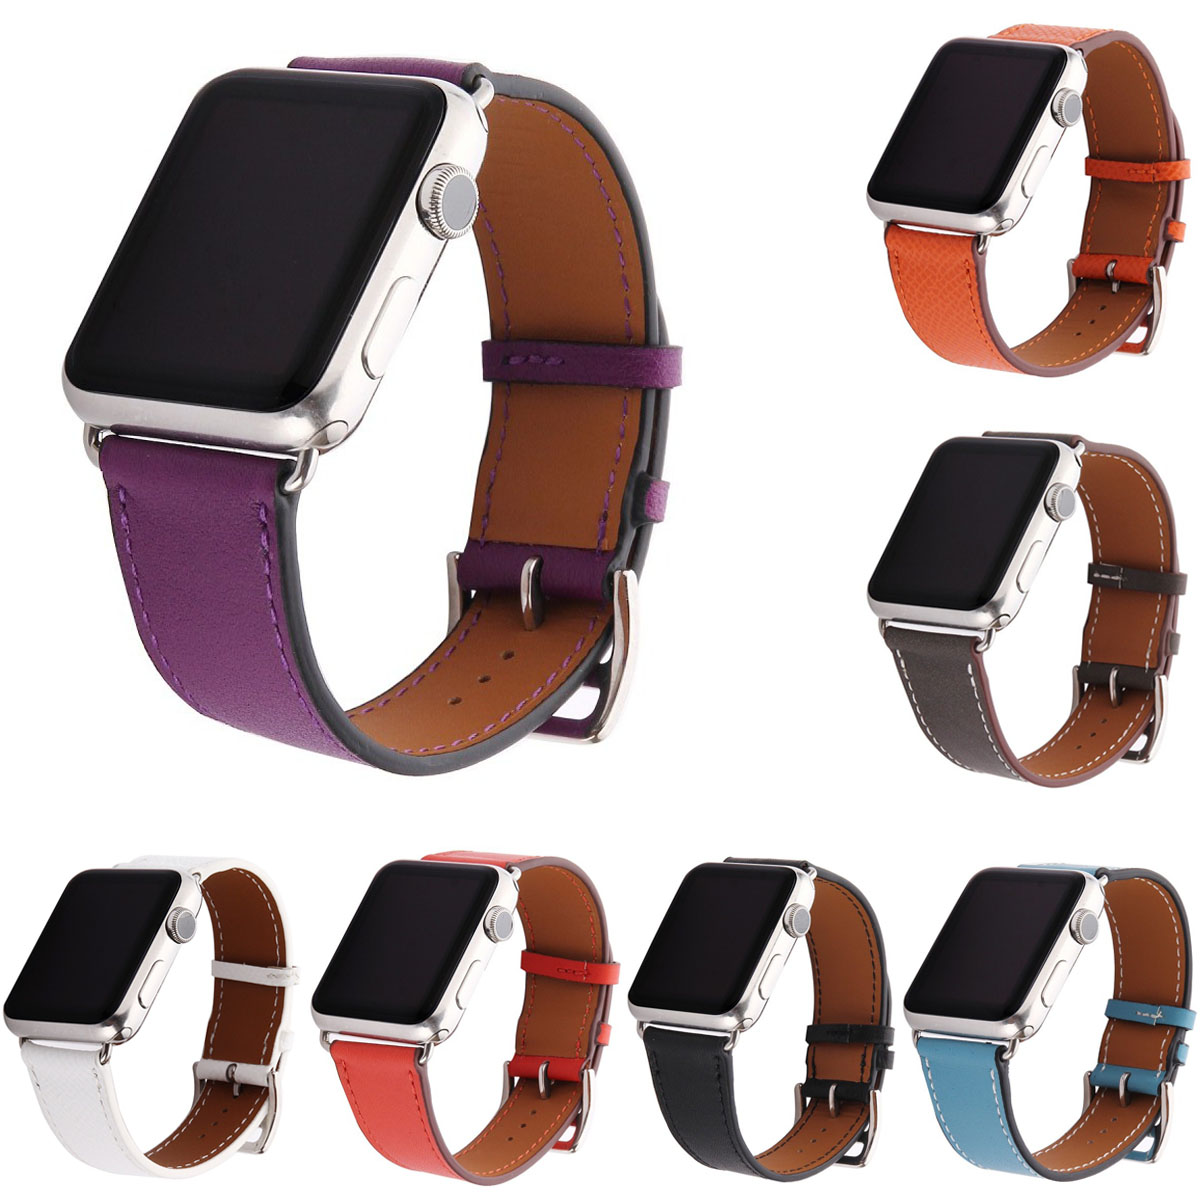 DAHASE Litchi Genuine Leather Band for Apple Watch Series 2 Strap for iWatch 1st Classic Watchband 42mm 38mm With Adapters kakapi crocodile skin genuine leather watchband with connector for apple watch 38mm series 2 series 1 pink